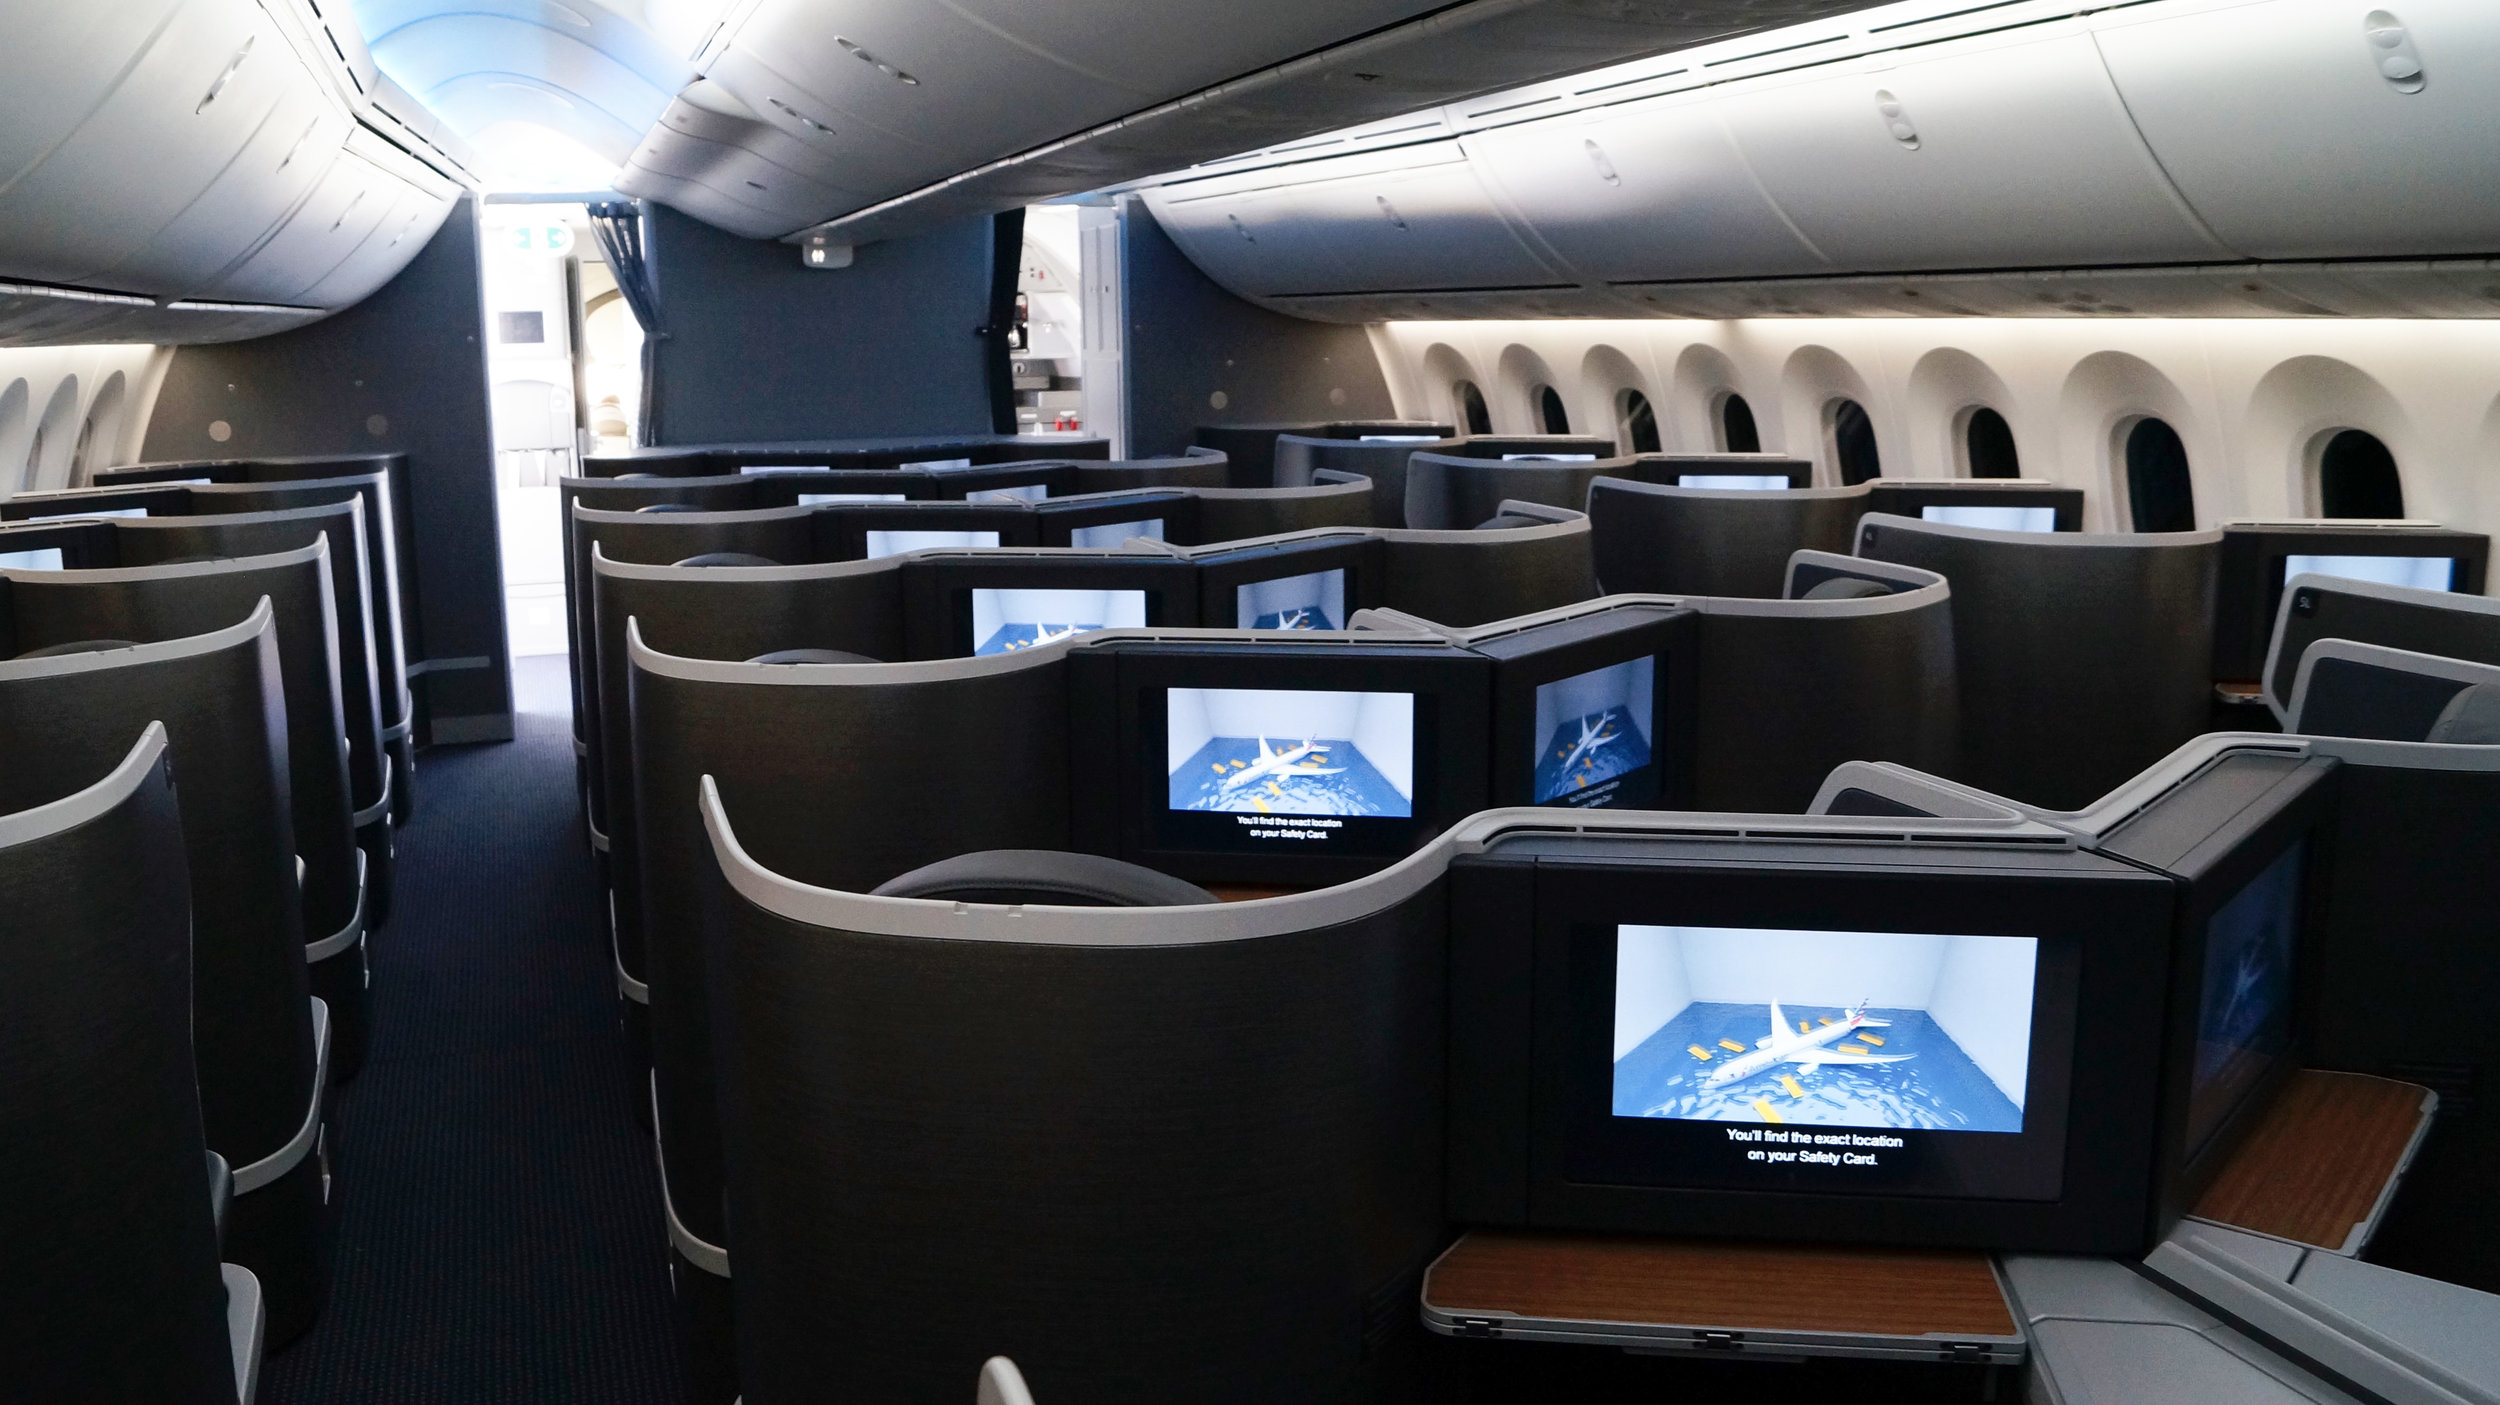 The business class cabin of the Boeing 787-9 as the safety video plays.